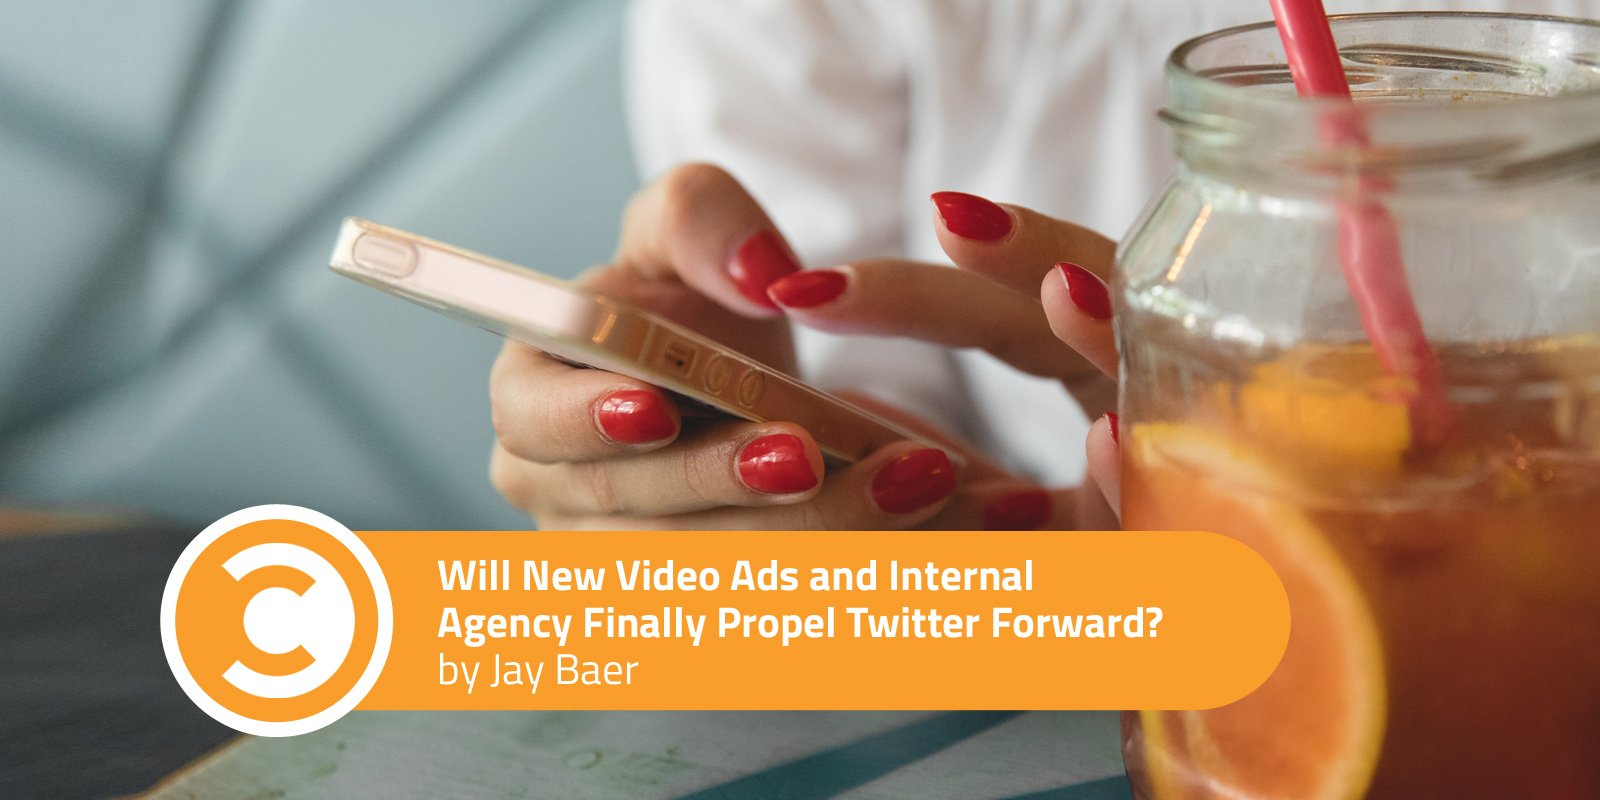 Will New Video Ads and Internal Agency Finally Propel Twitter Forward